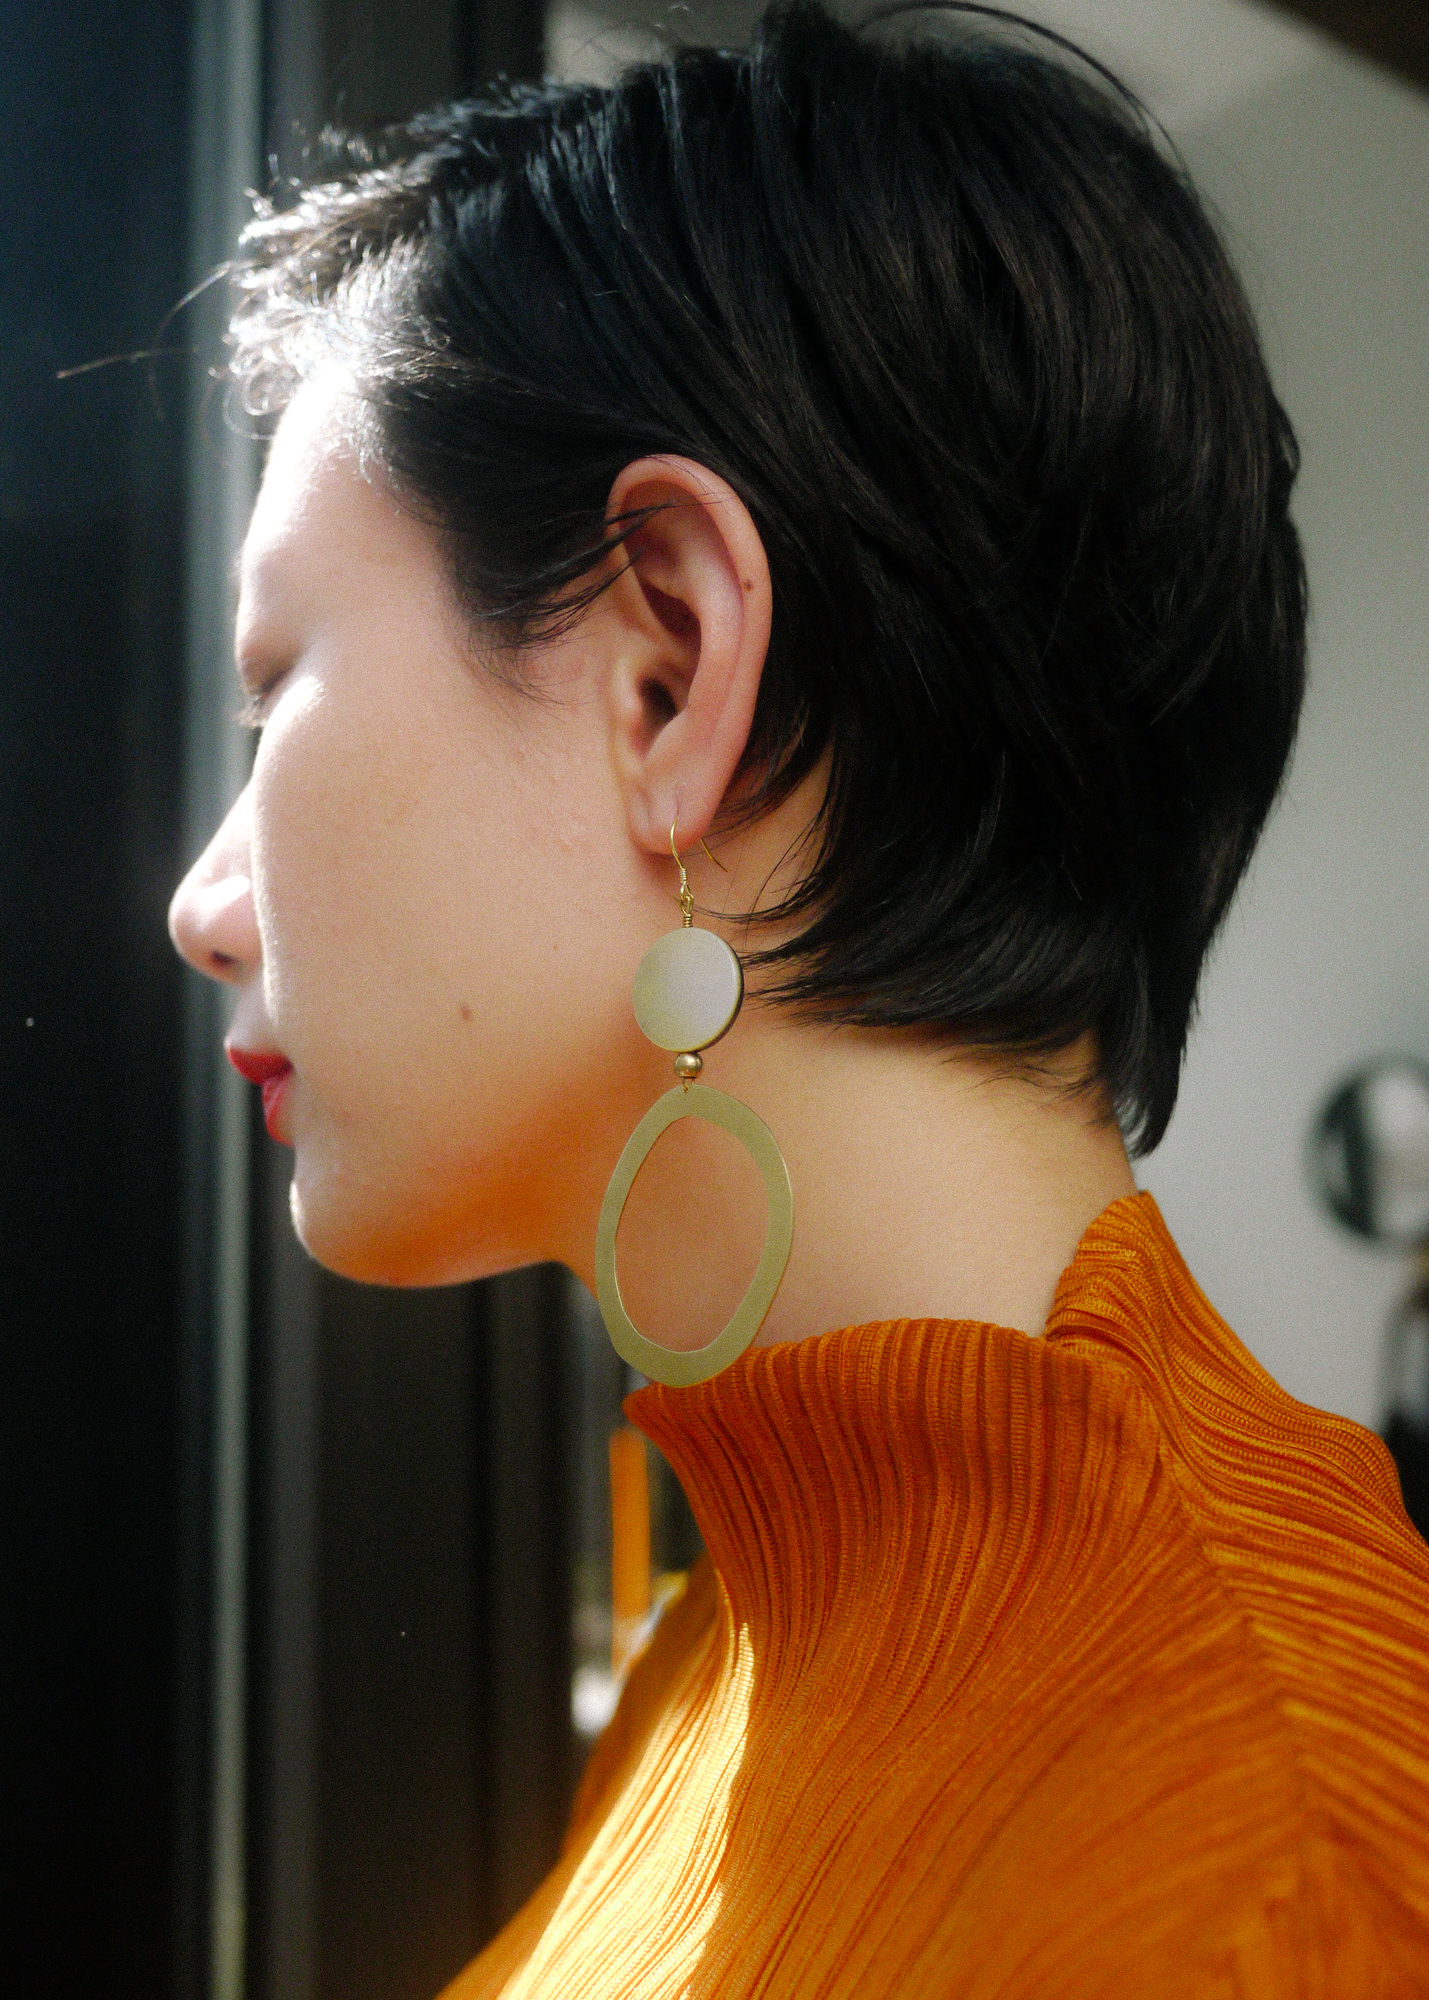 The Wholeness earrings